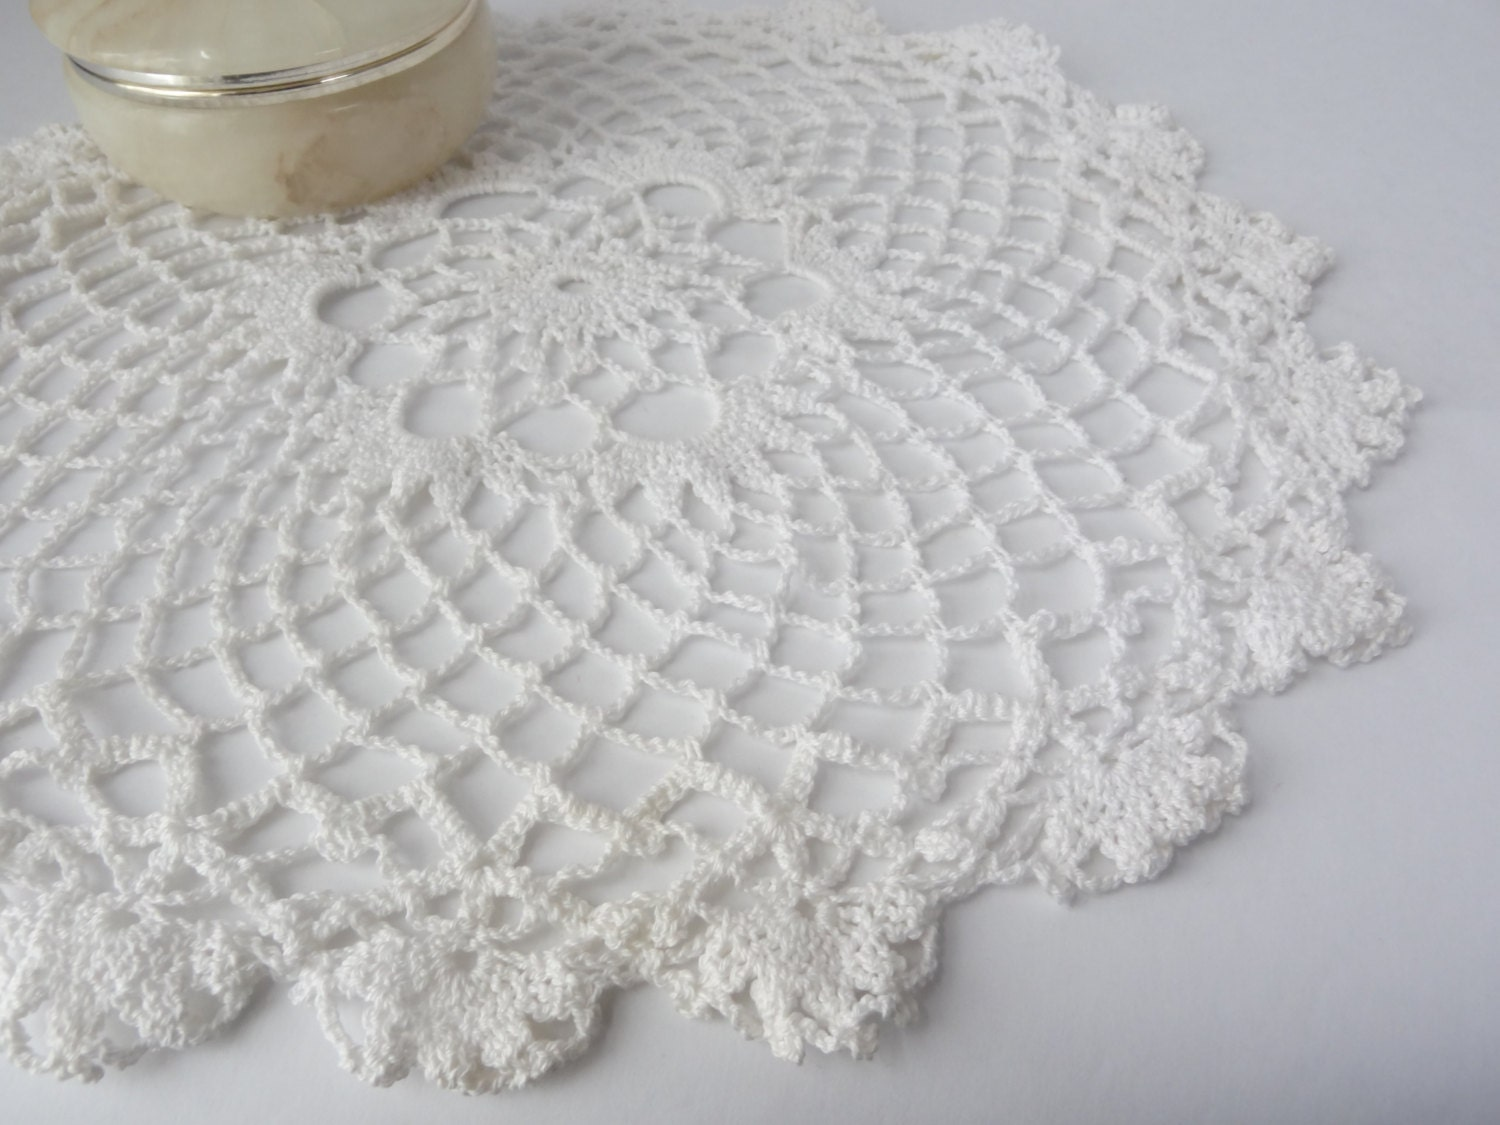 Free Crochet Patterns Round Table Toppers : crochet doilie round white table topper doily by ...